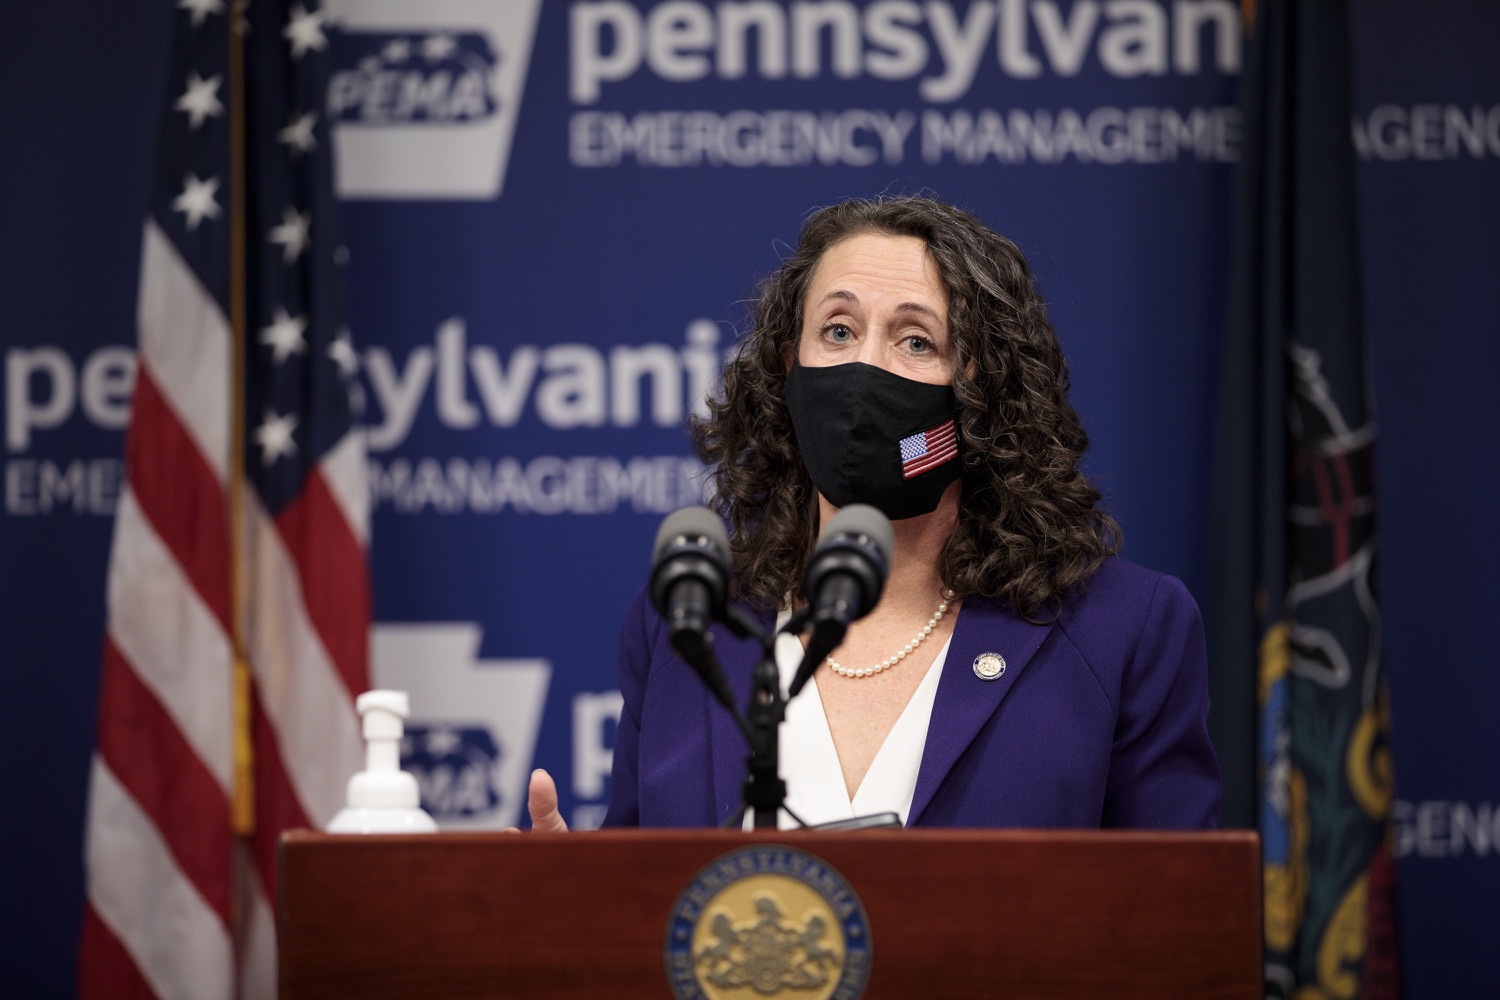 """<a href=""""https://filesource.wostreaming.net/commonwealthofpa/photo/18465_gov_electoralCollege_dz_12.jpg"""" target=""""_blank"""">⇣Download Photo<br></a>Secretary of the Commonwealth of Pennsylvania Kathy Boockvar speaking at the press conference.  With Congress preparing to count Electoral College votes today, Governor Tom Wolf was joined by Secretary of State Kathy Boockvar and Philadelphia City Commissioner Al Schmidt to emphasize that Pennsylvania had a free, fair and secure election. All efforts by Congressional Republicans to overthrow the election results and subvert the will of the voters are disgraceful and must be rejected. Harrisburg, PA  January 6, 2021"""